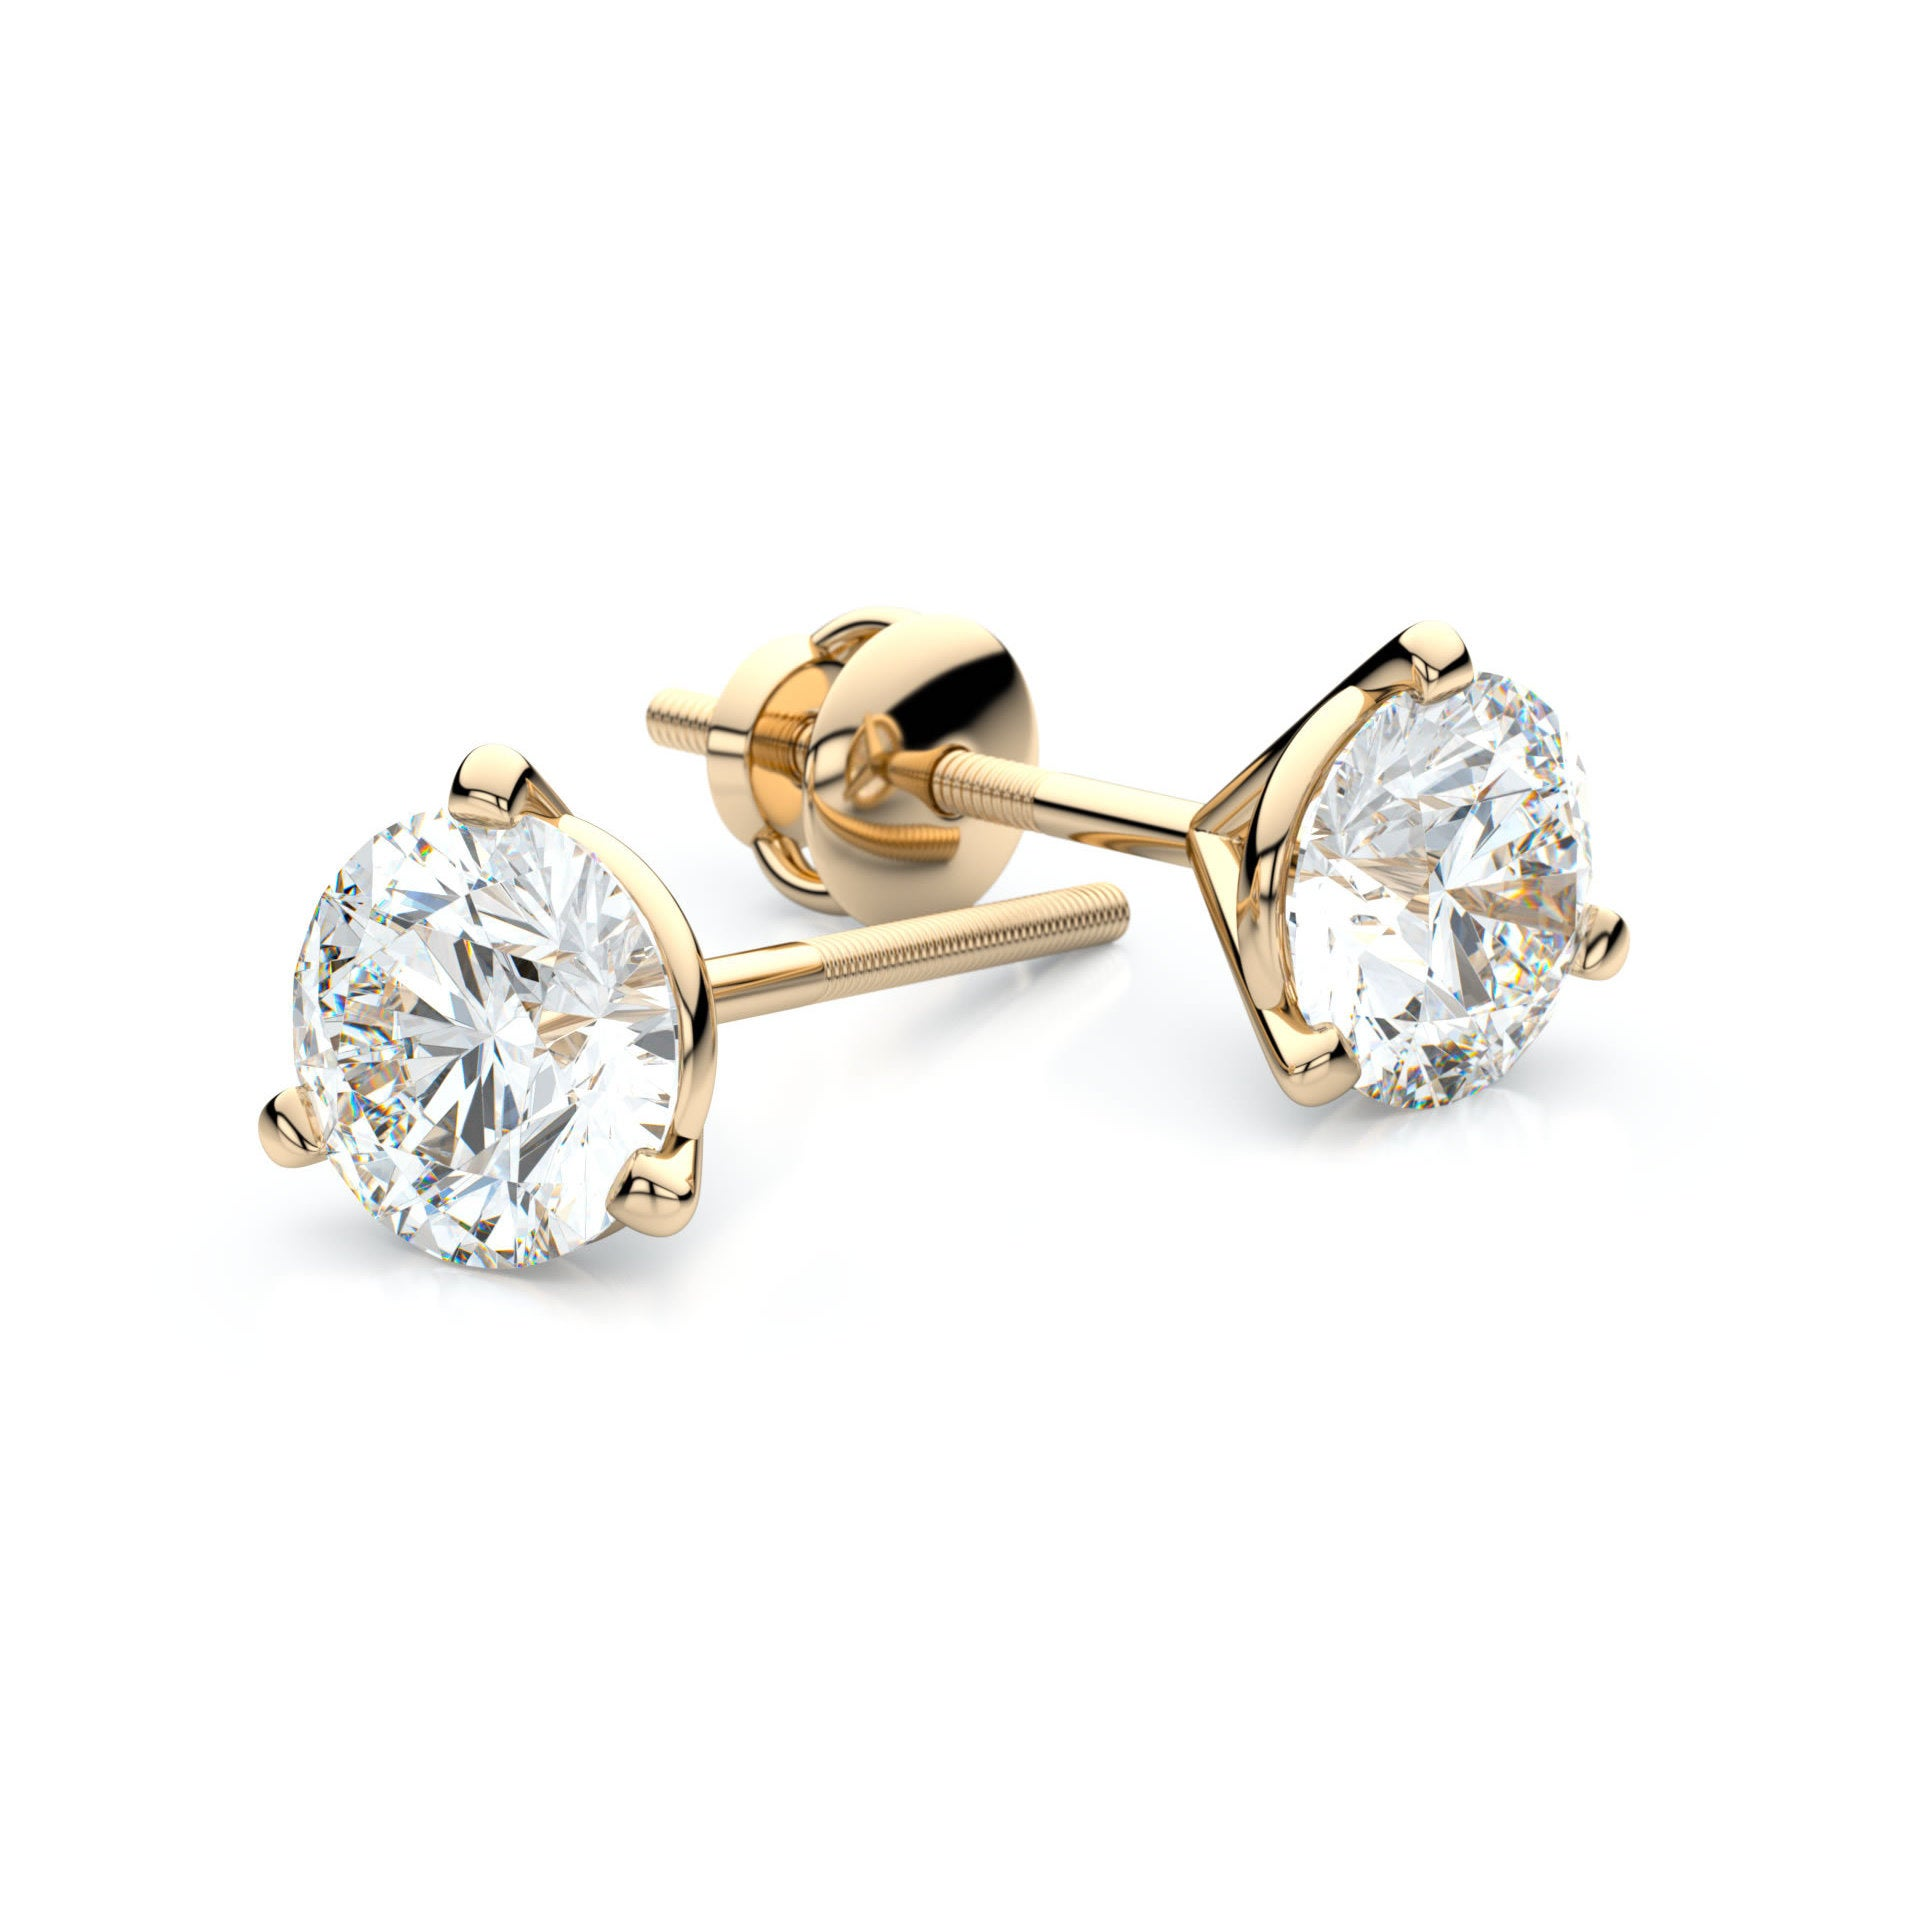 stud majesty gold cut o bijoux solitaire prong with screwbacks in setting martini w earrings diamond white round